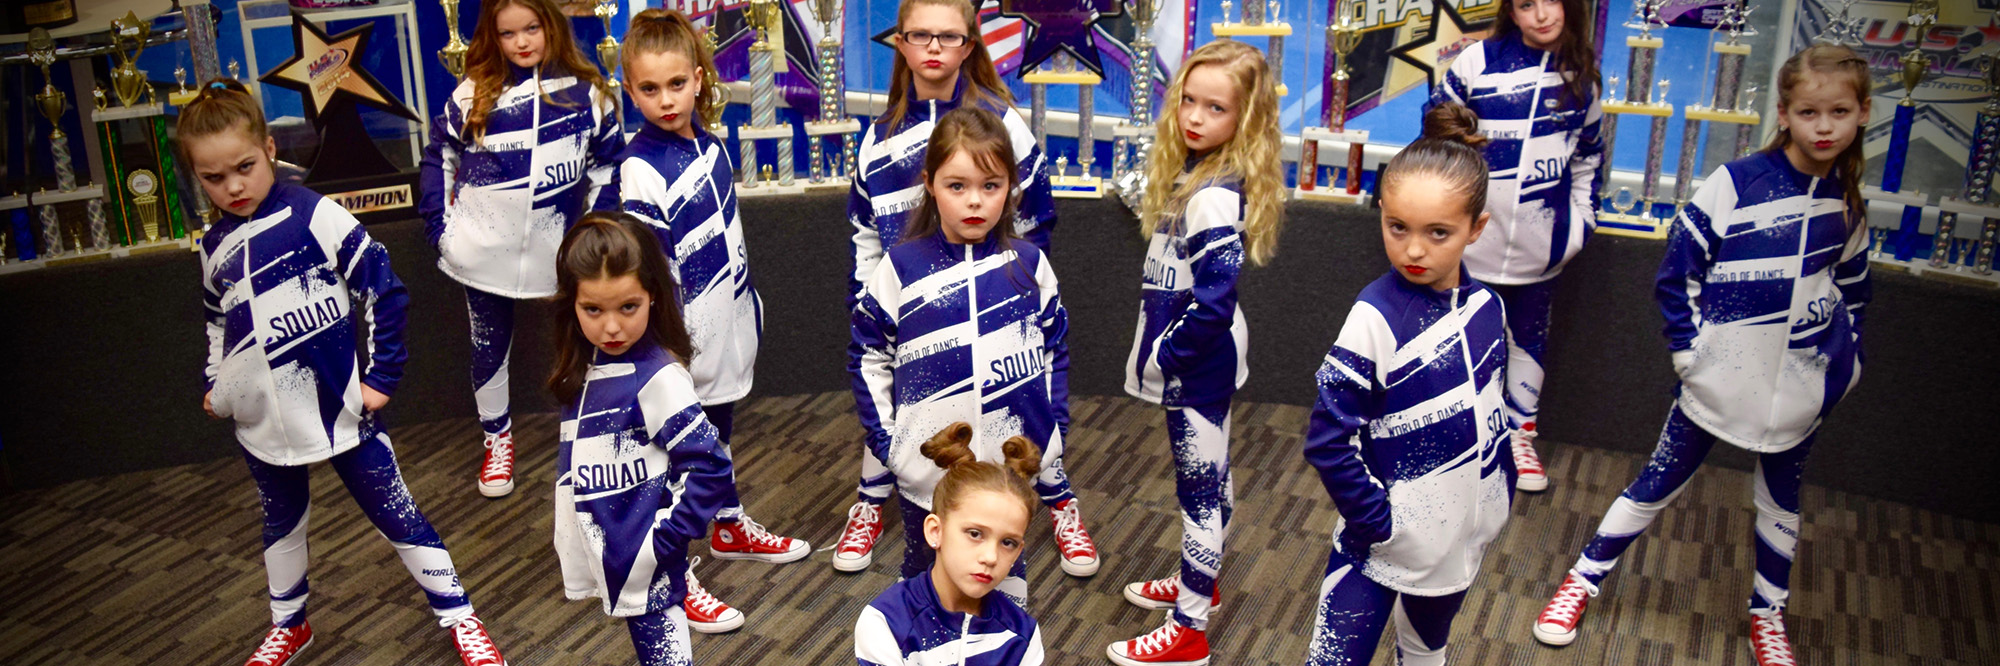 girls in matching dance uniforms posing